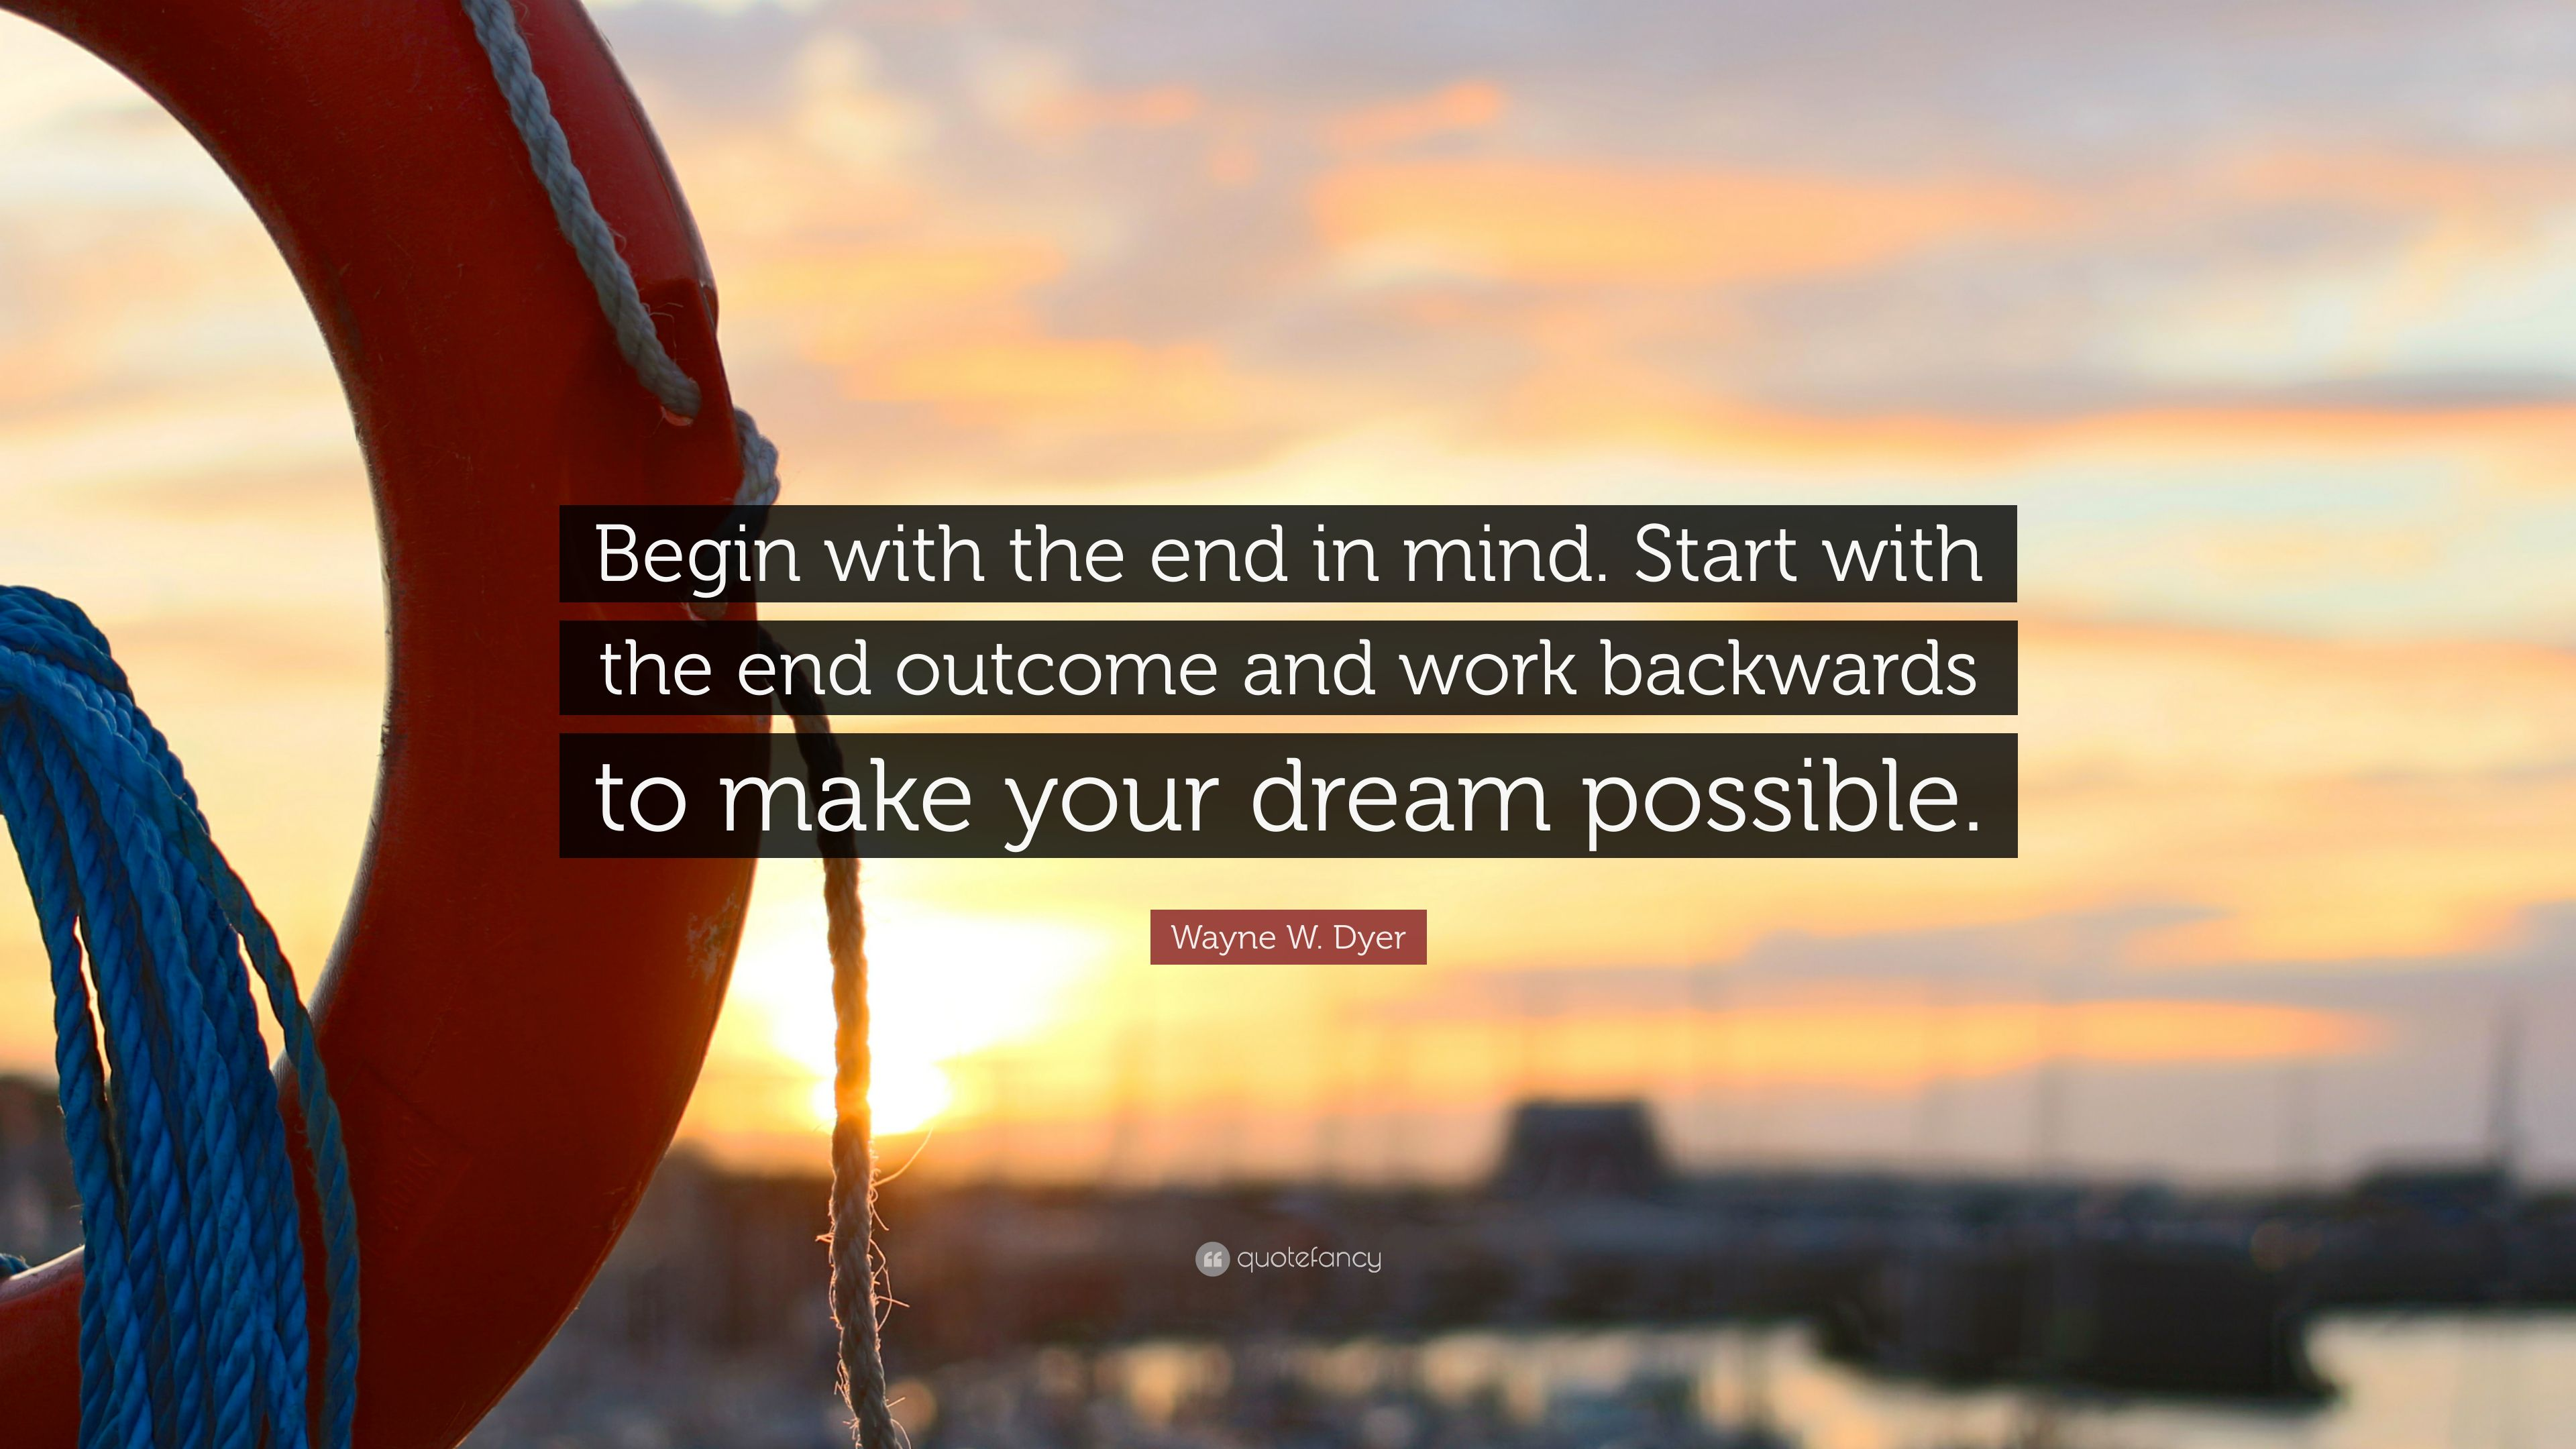 Wayne W Dyer Quote Begin with the end in mind Start